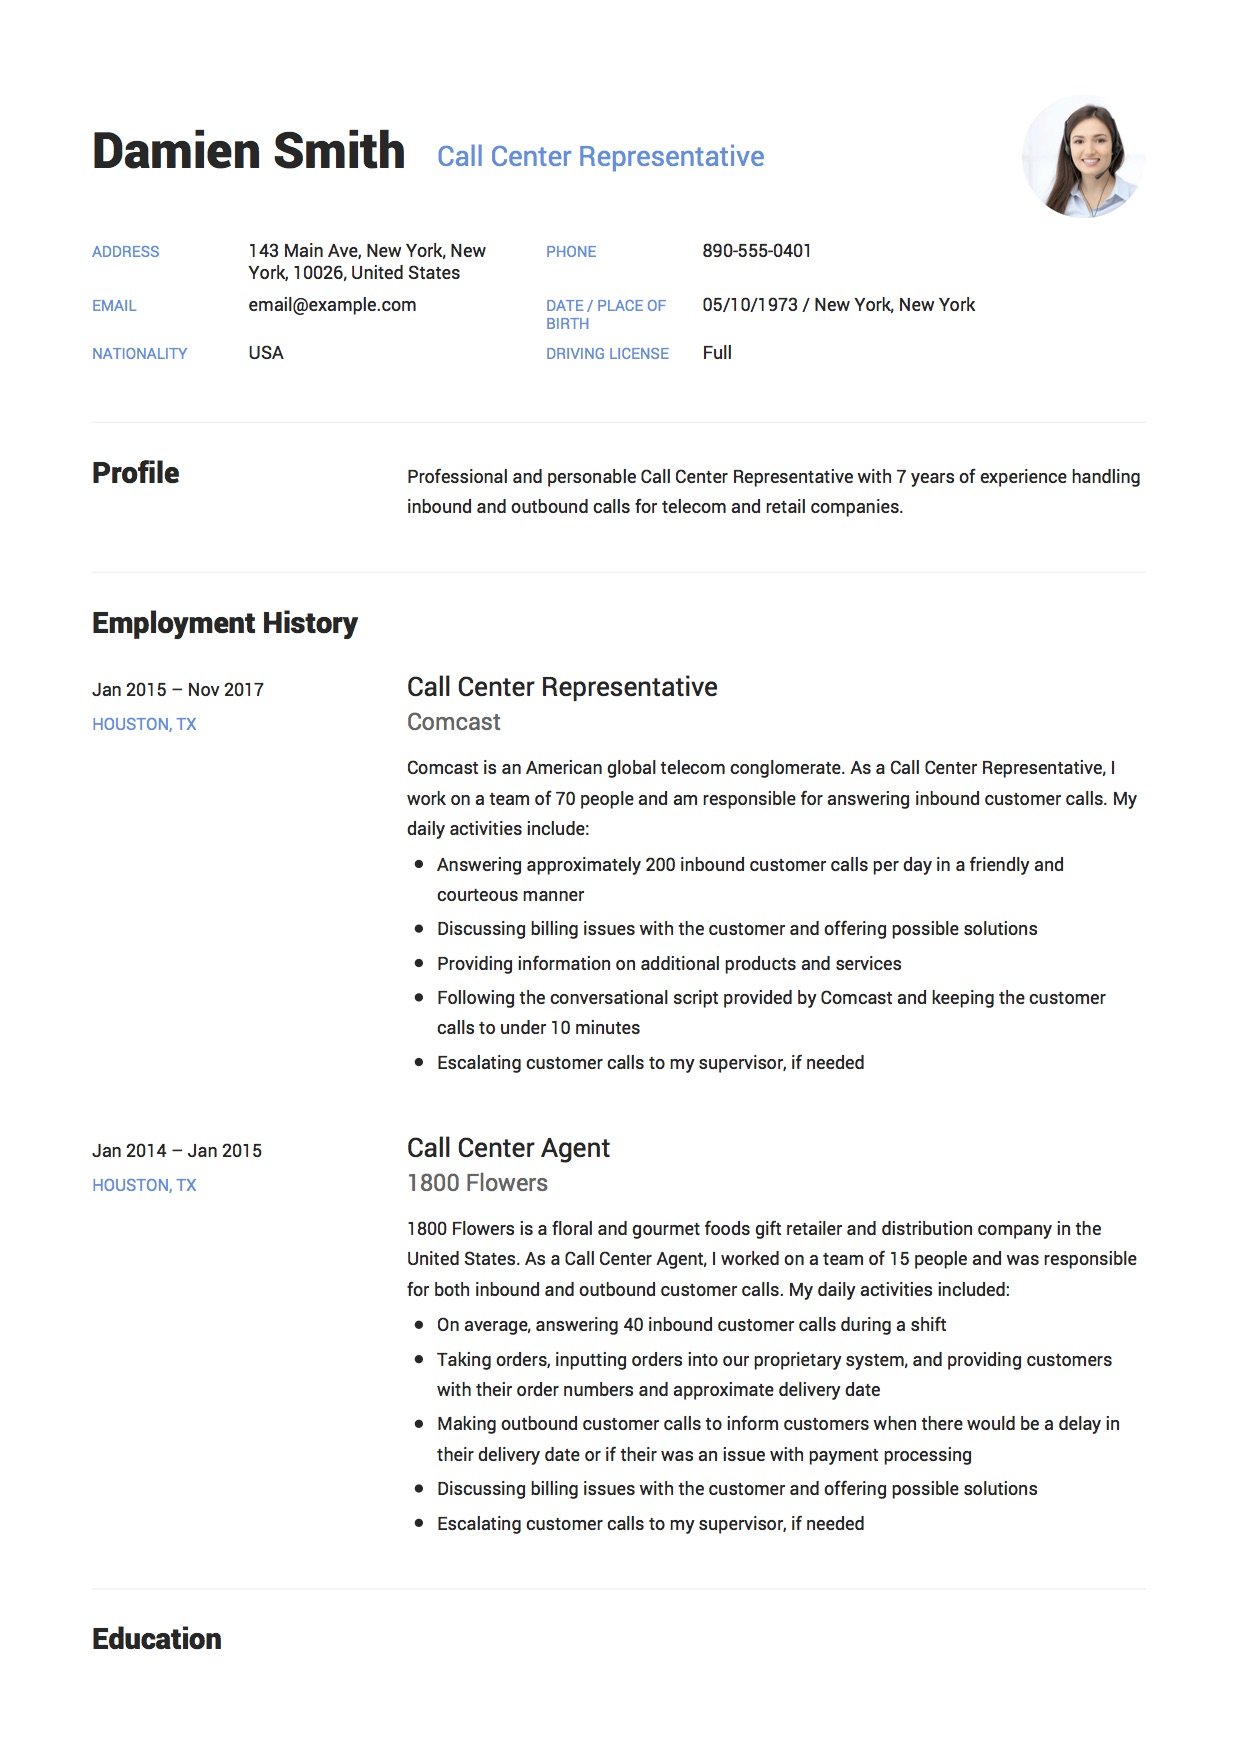 12 Call Center Representative Resume Sample(s) 2018 (Free Downloads)